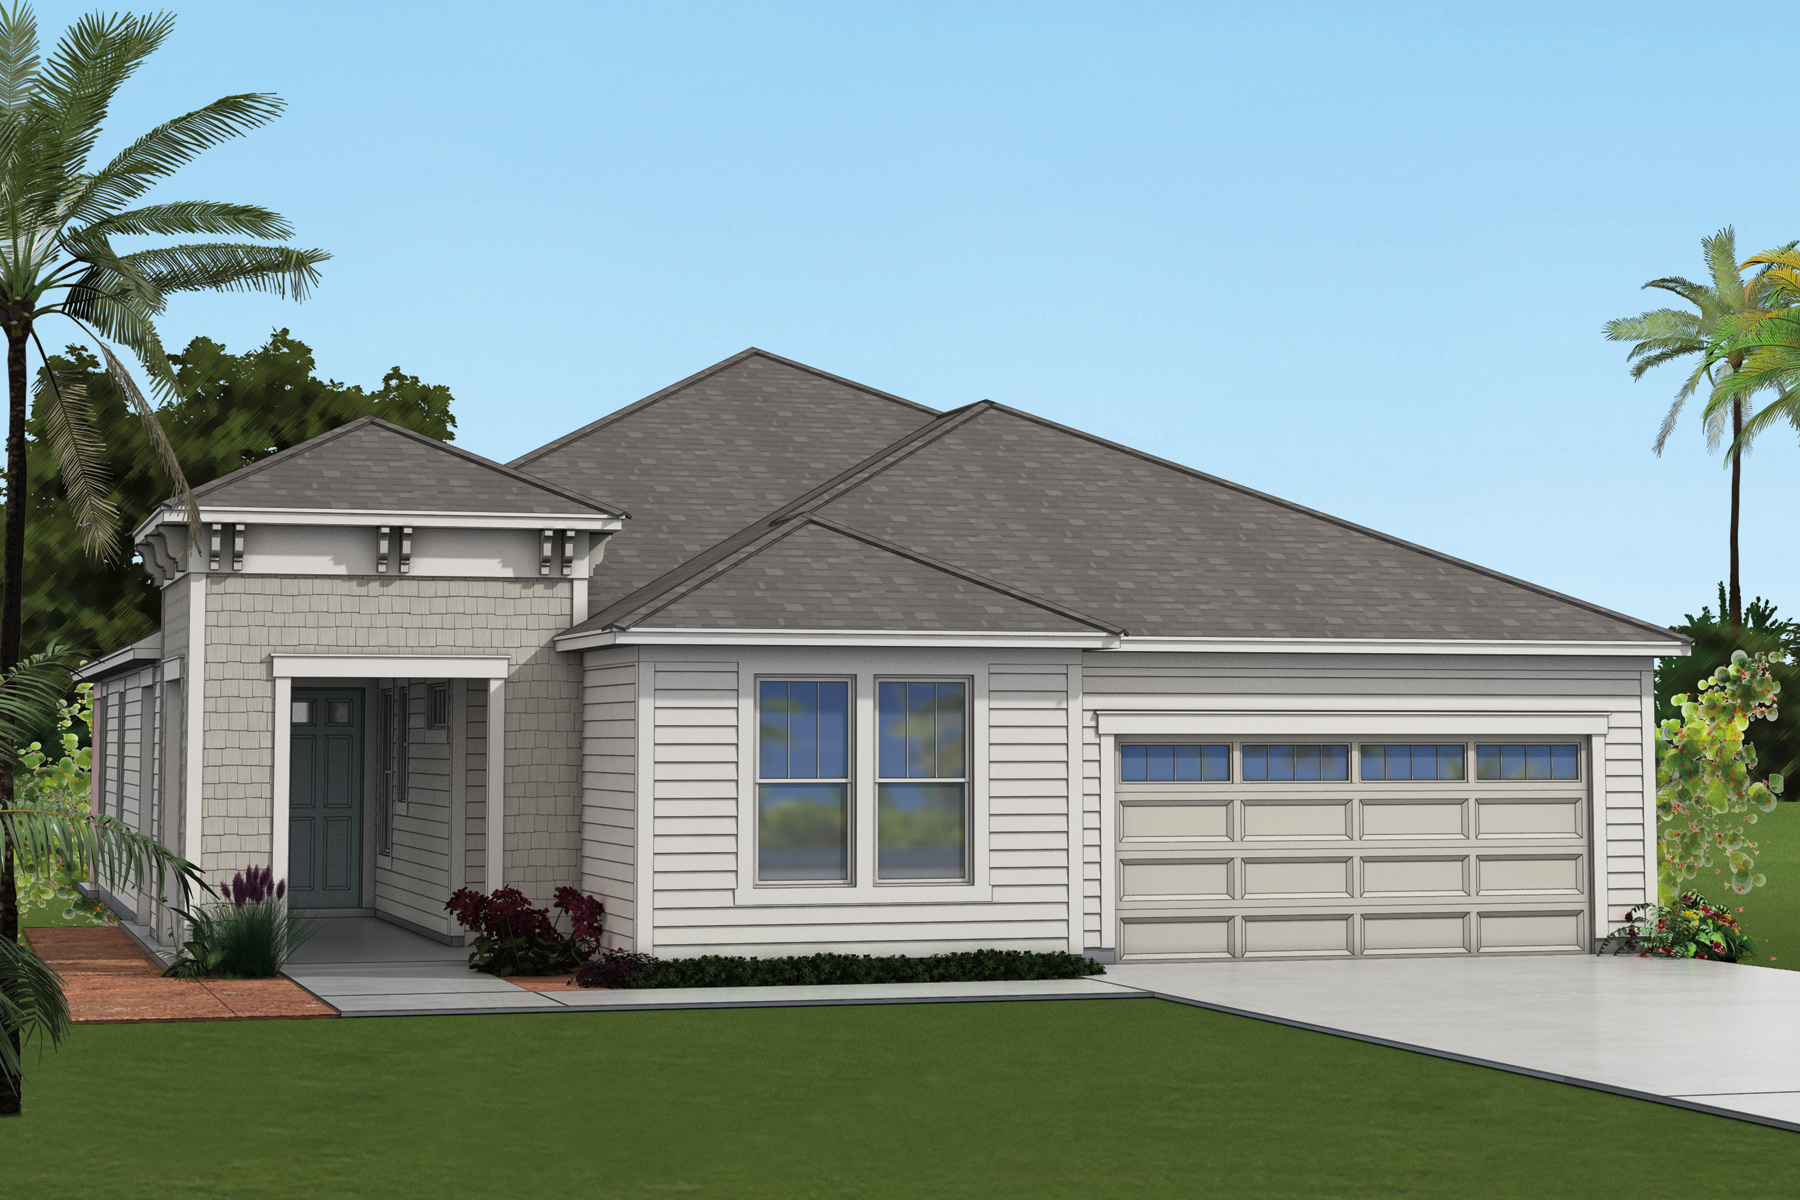 Beauclair Plan Elevation Front at RiverTown - Arbors in St. Johns Florida by Mattamy Homes